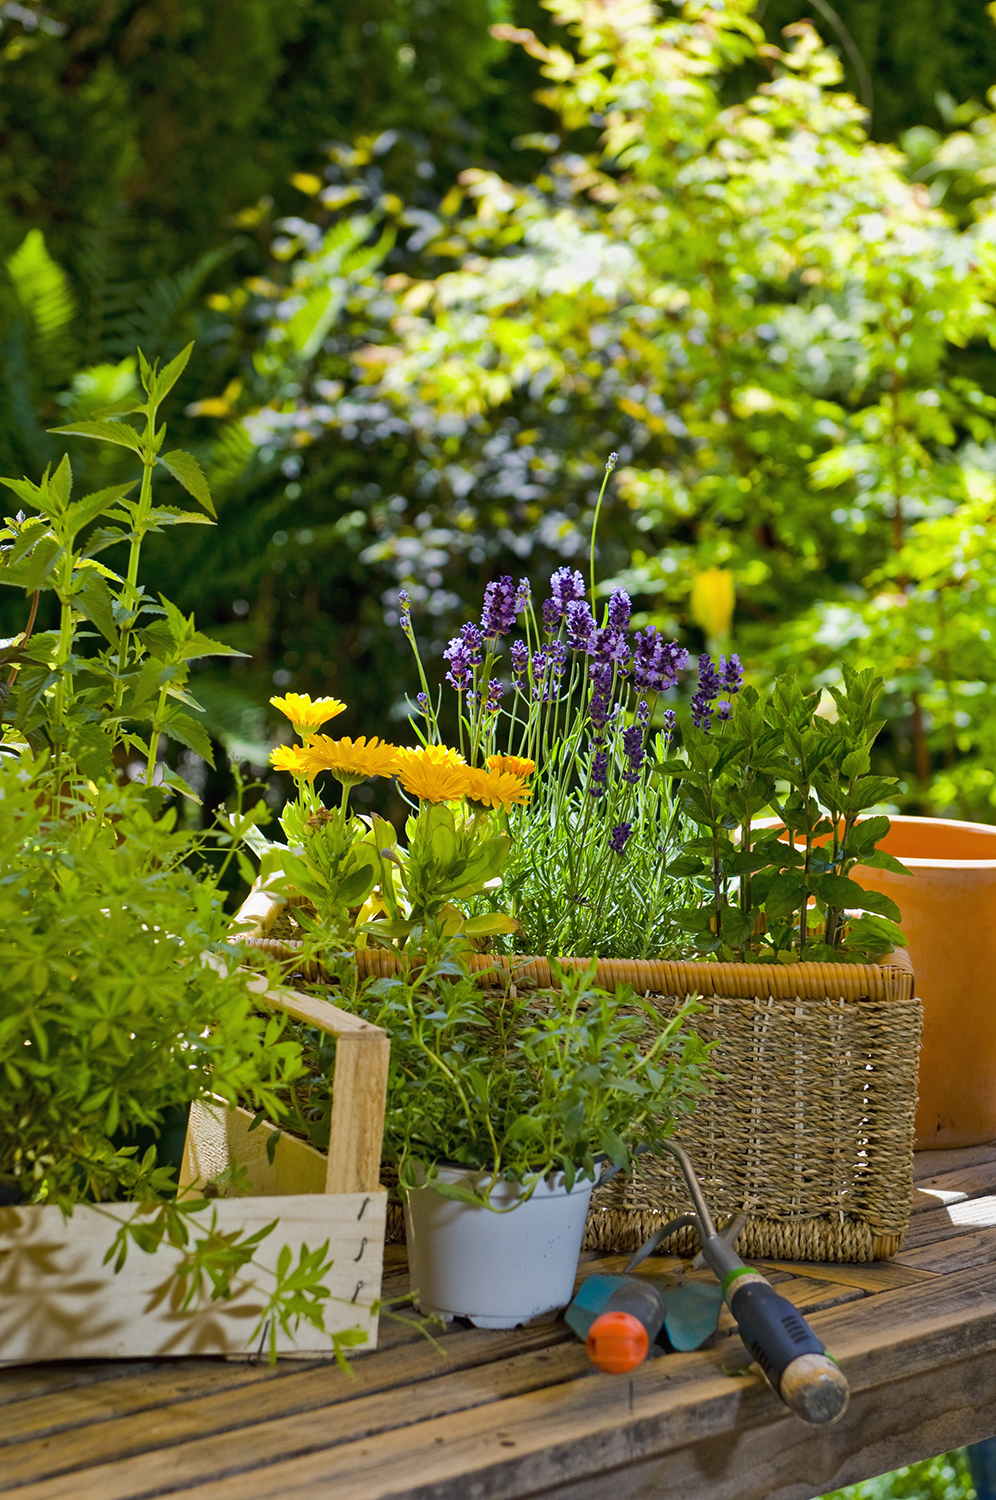 Flowers and gardening tools